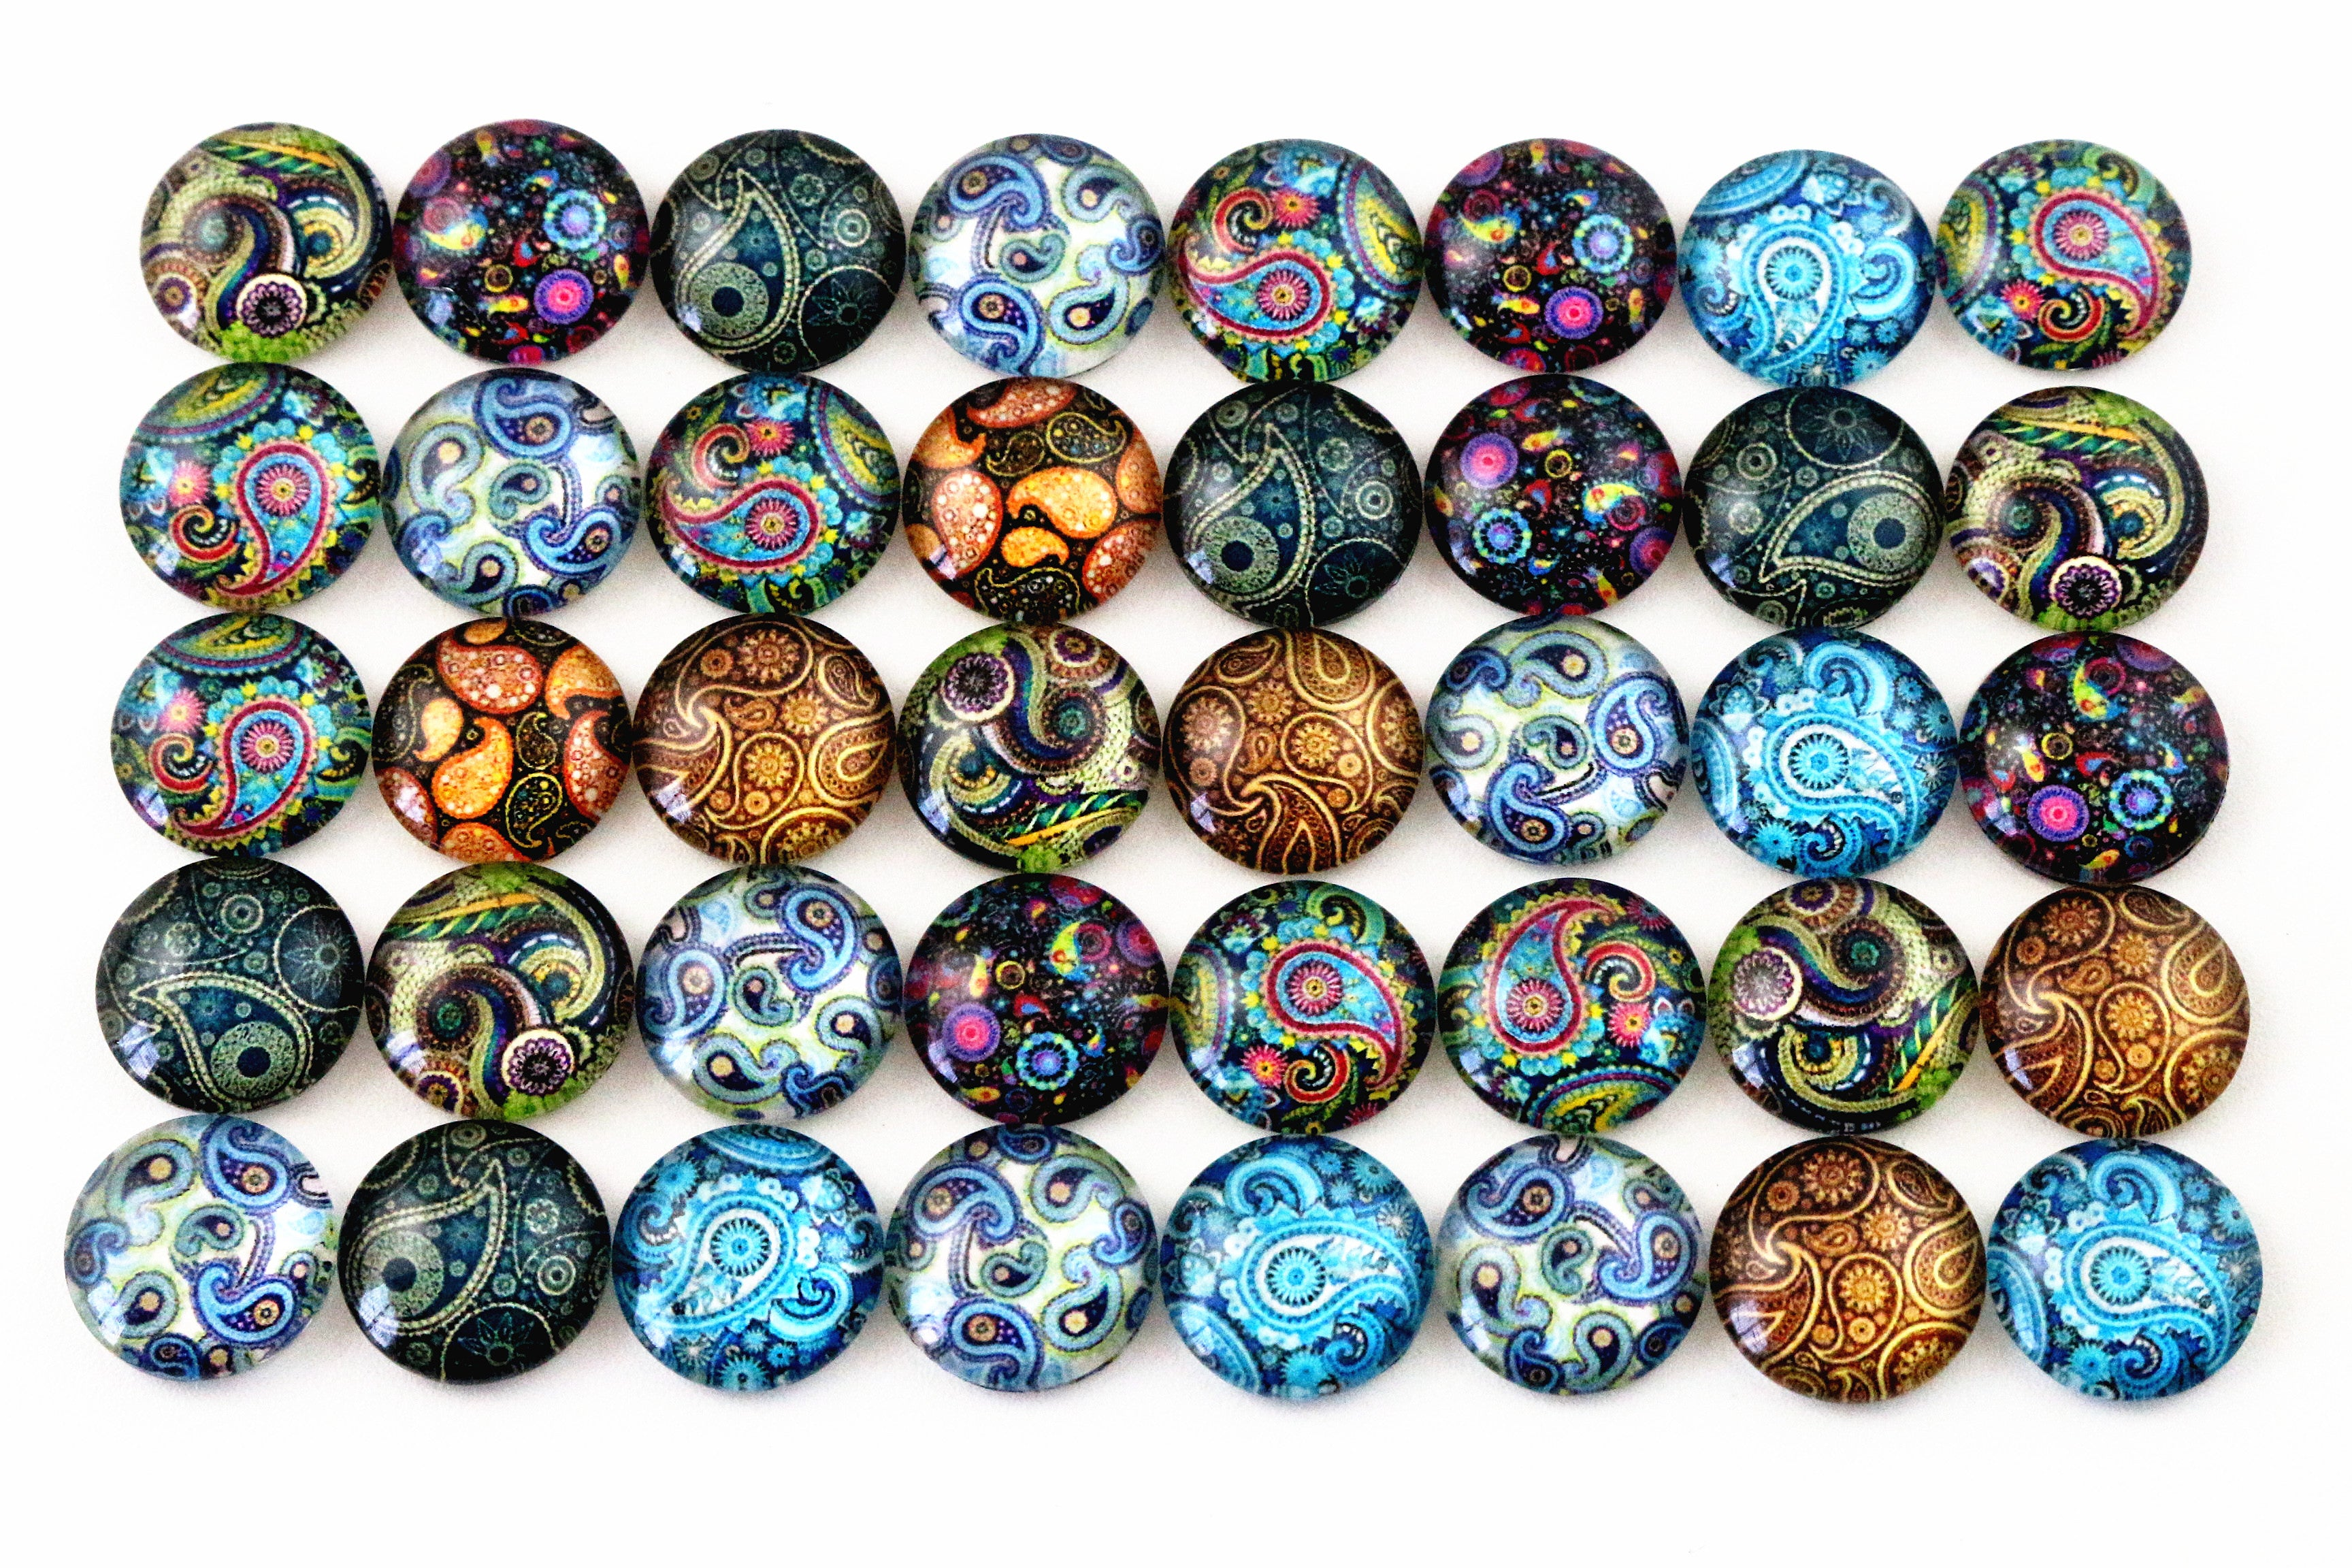 12mm Round Glass Cabochon Assorted Paisley Pattern Designs Cameo Fit Base Setting